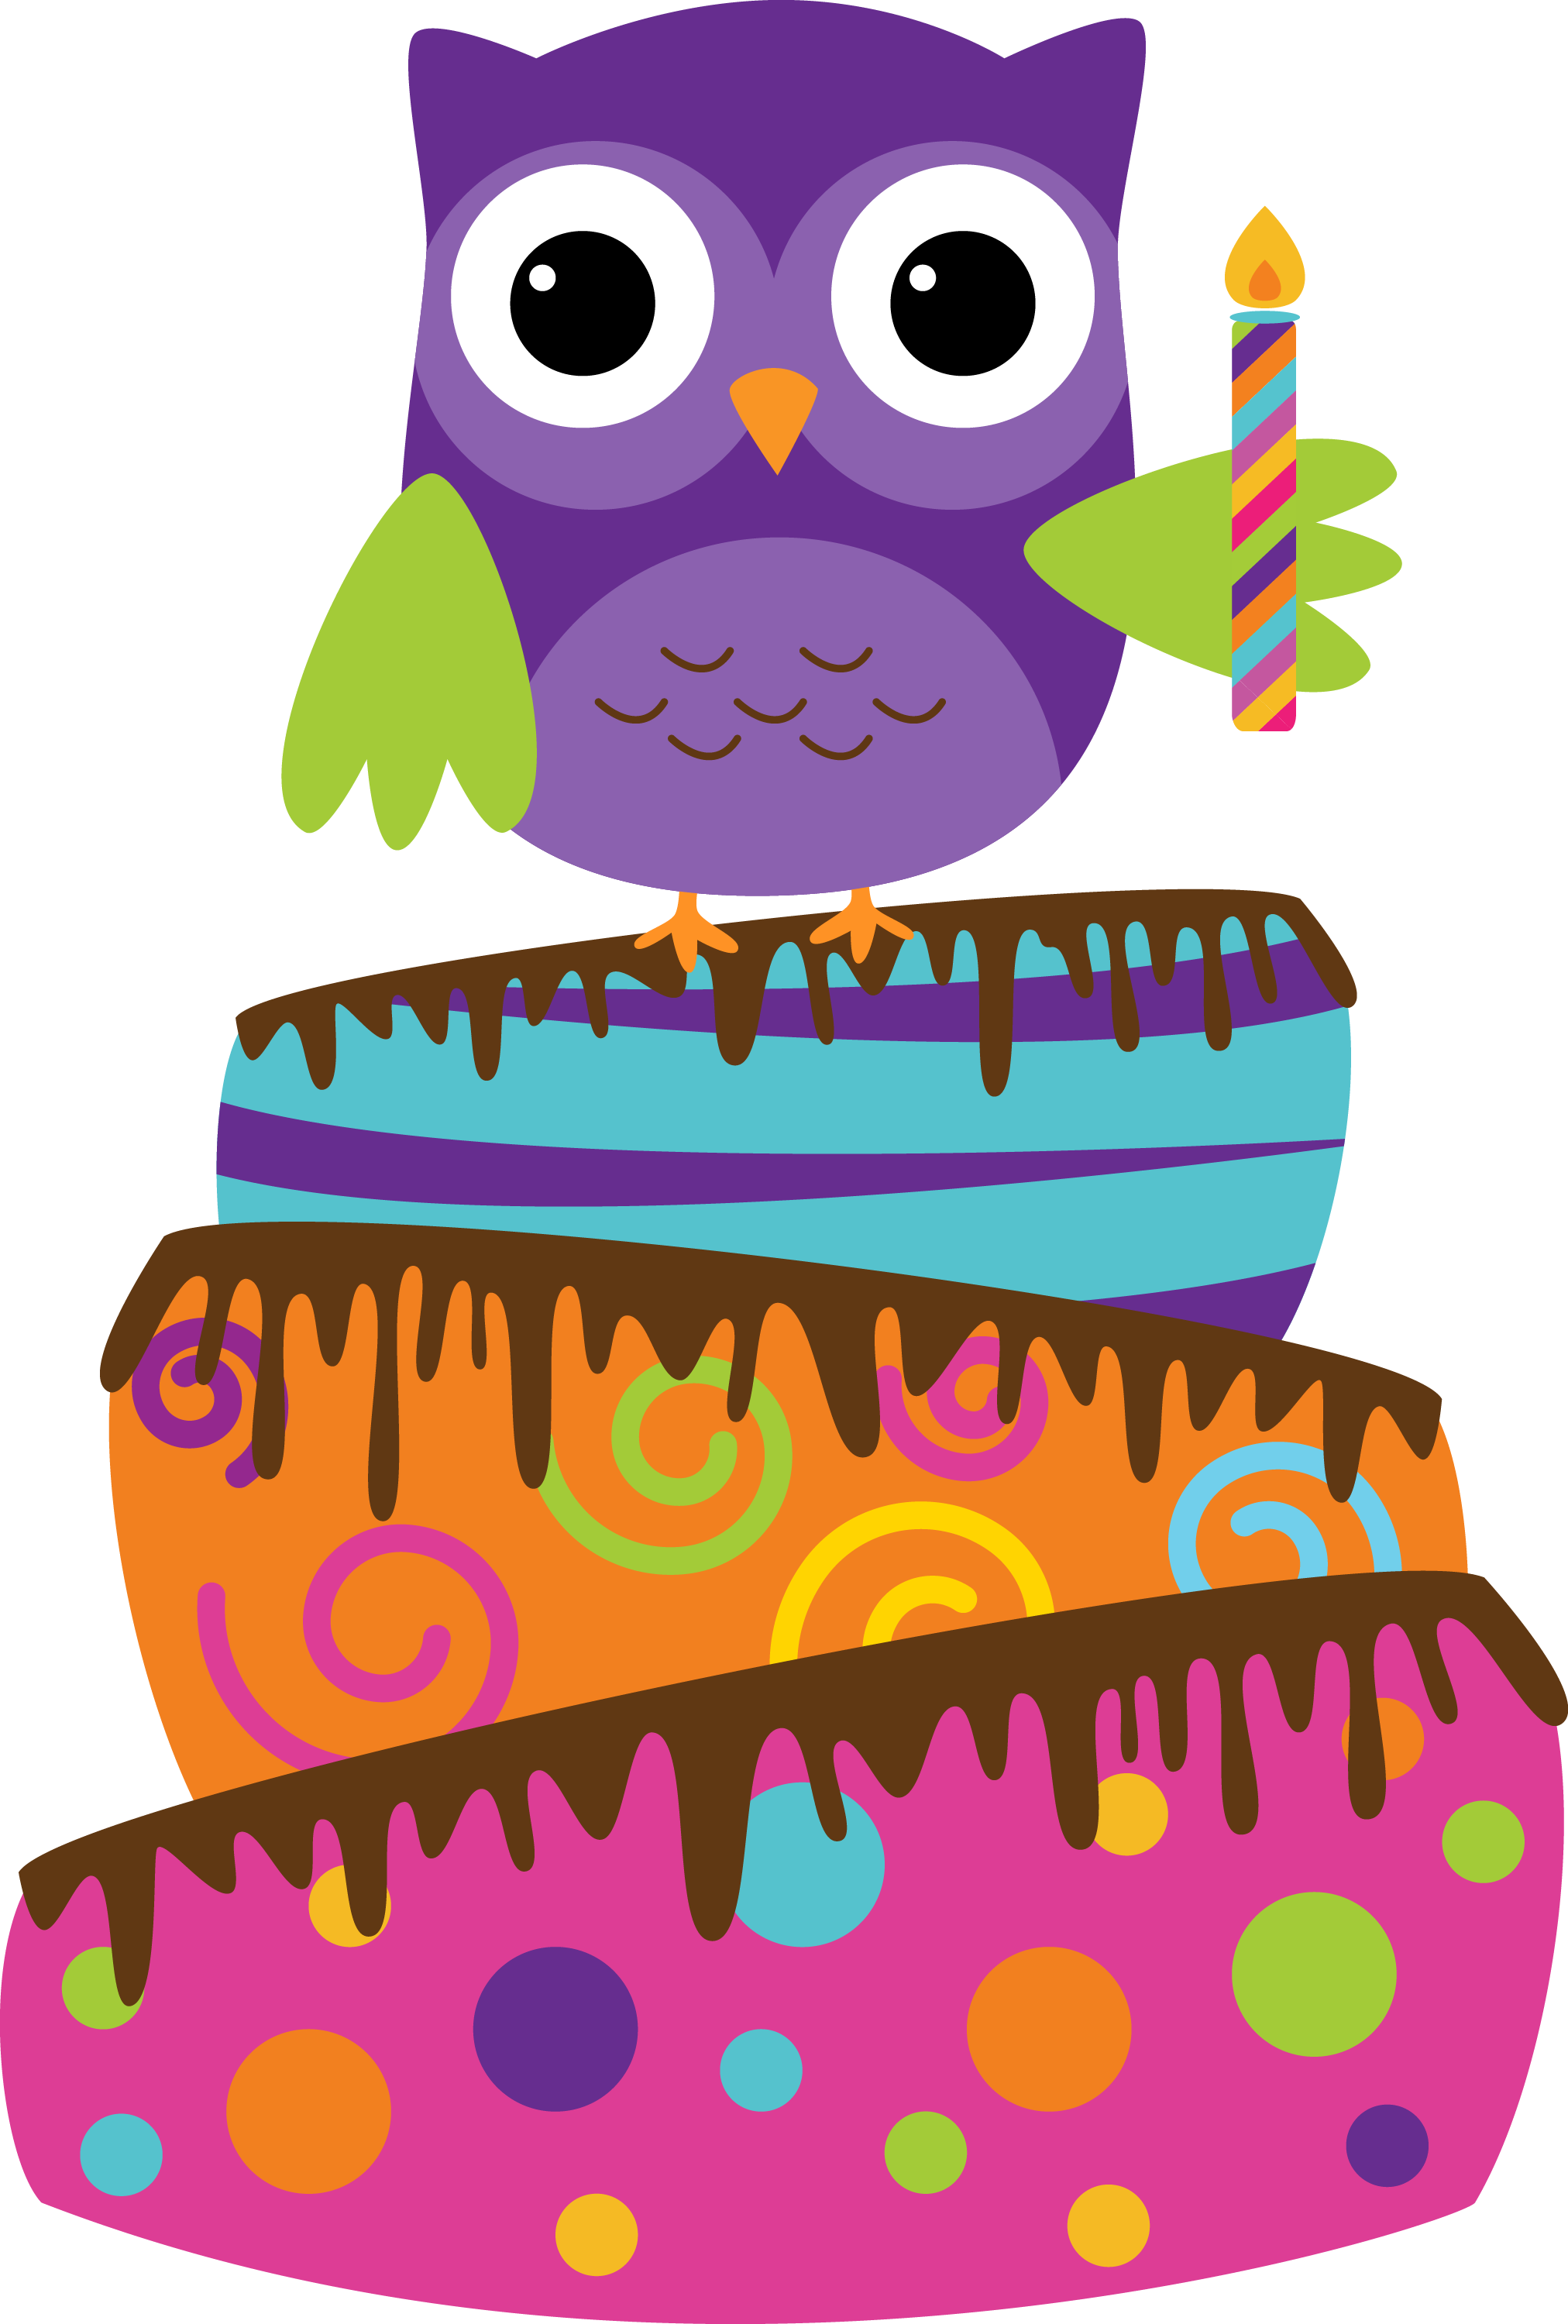 Clipart birthday with sun and sand png freeuse download Photo by @daniellemoraesfalcao - Minus | buhos | Pinterest | Owl ... png freeuse download